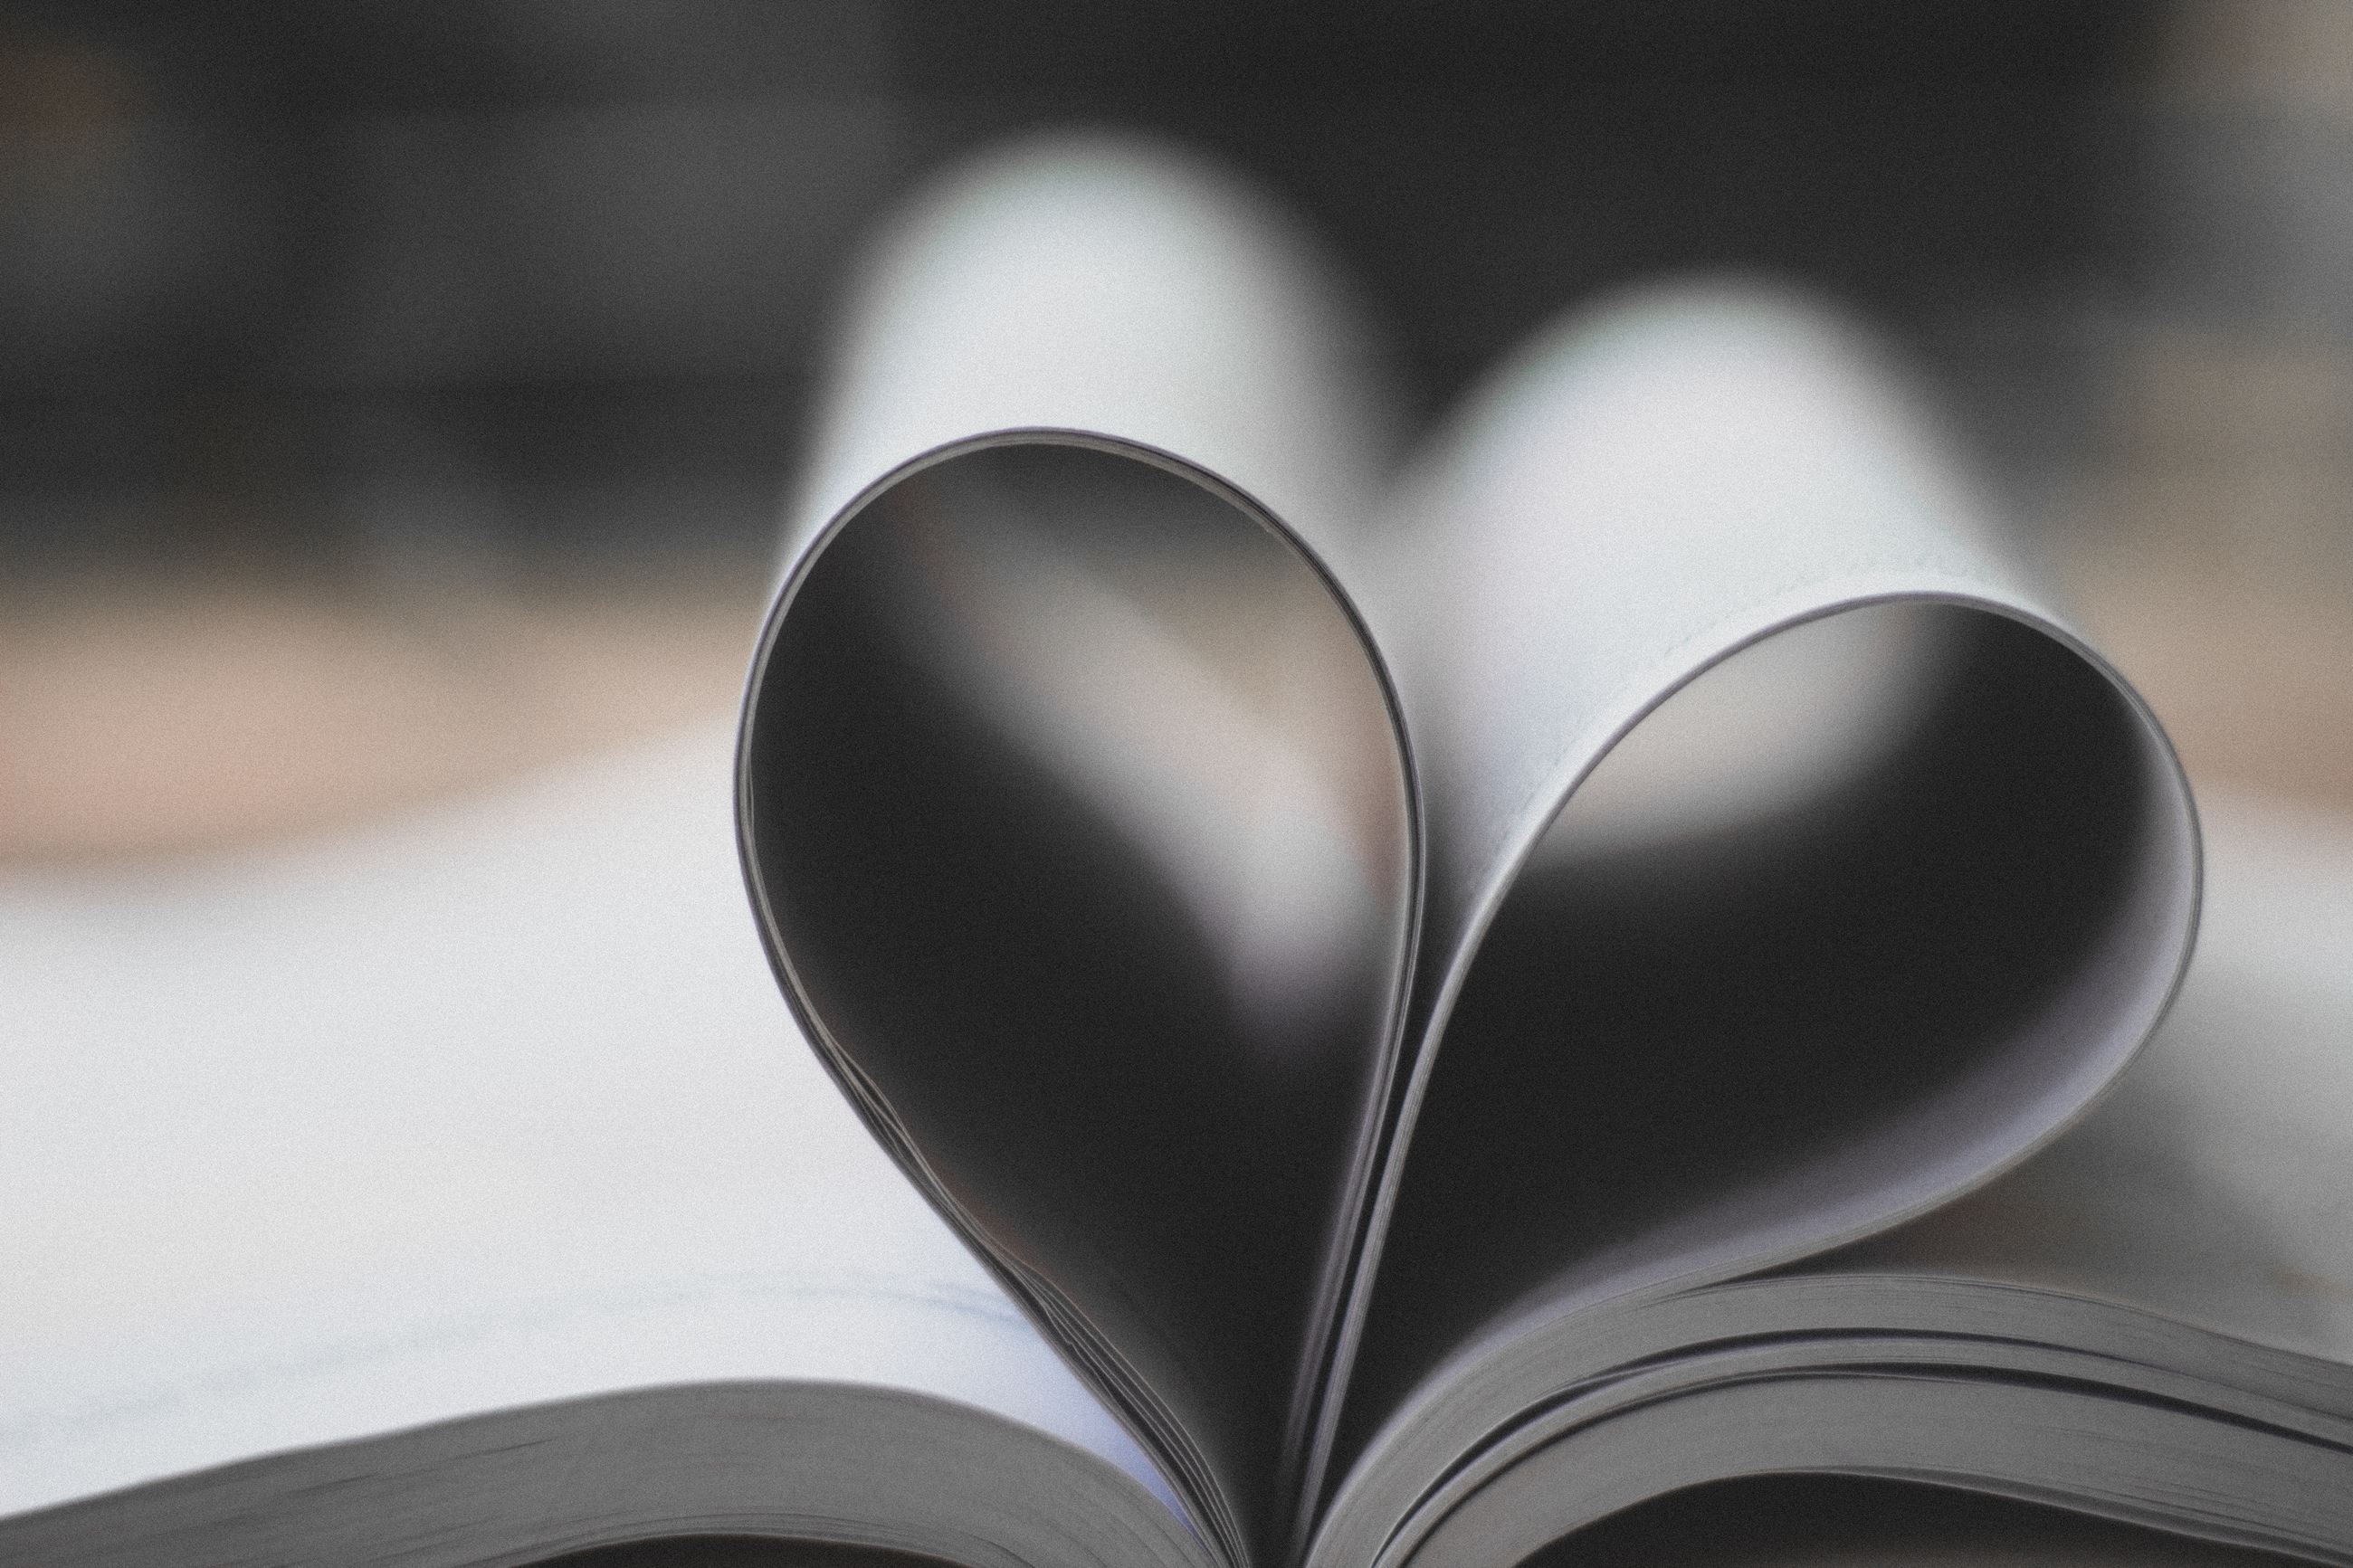 book pages in a heart